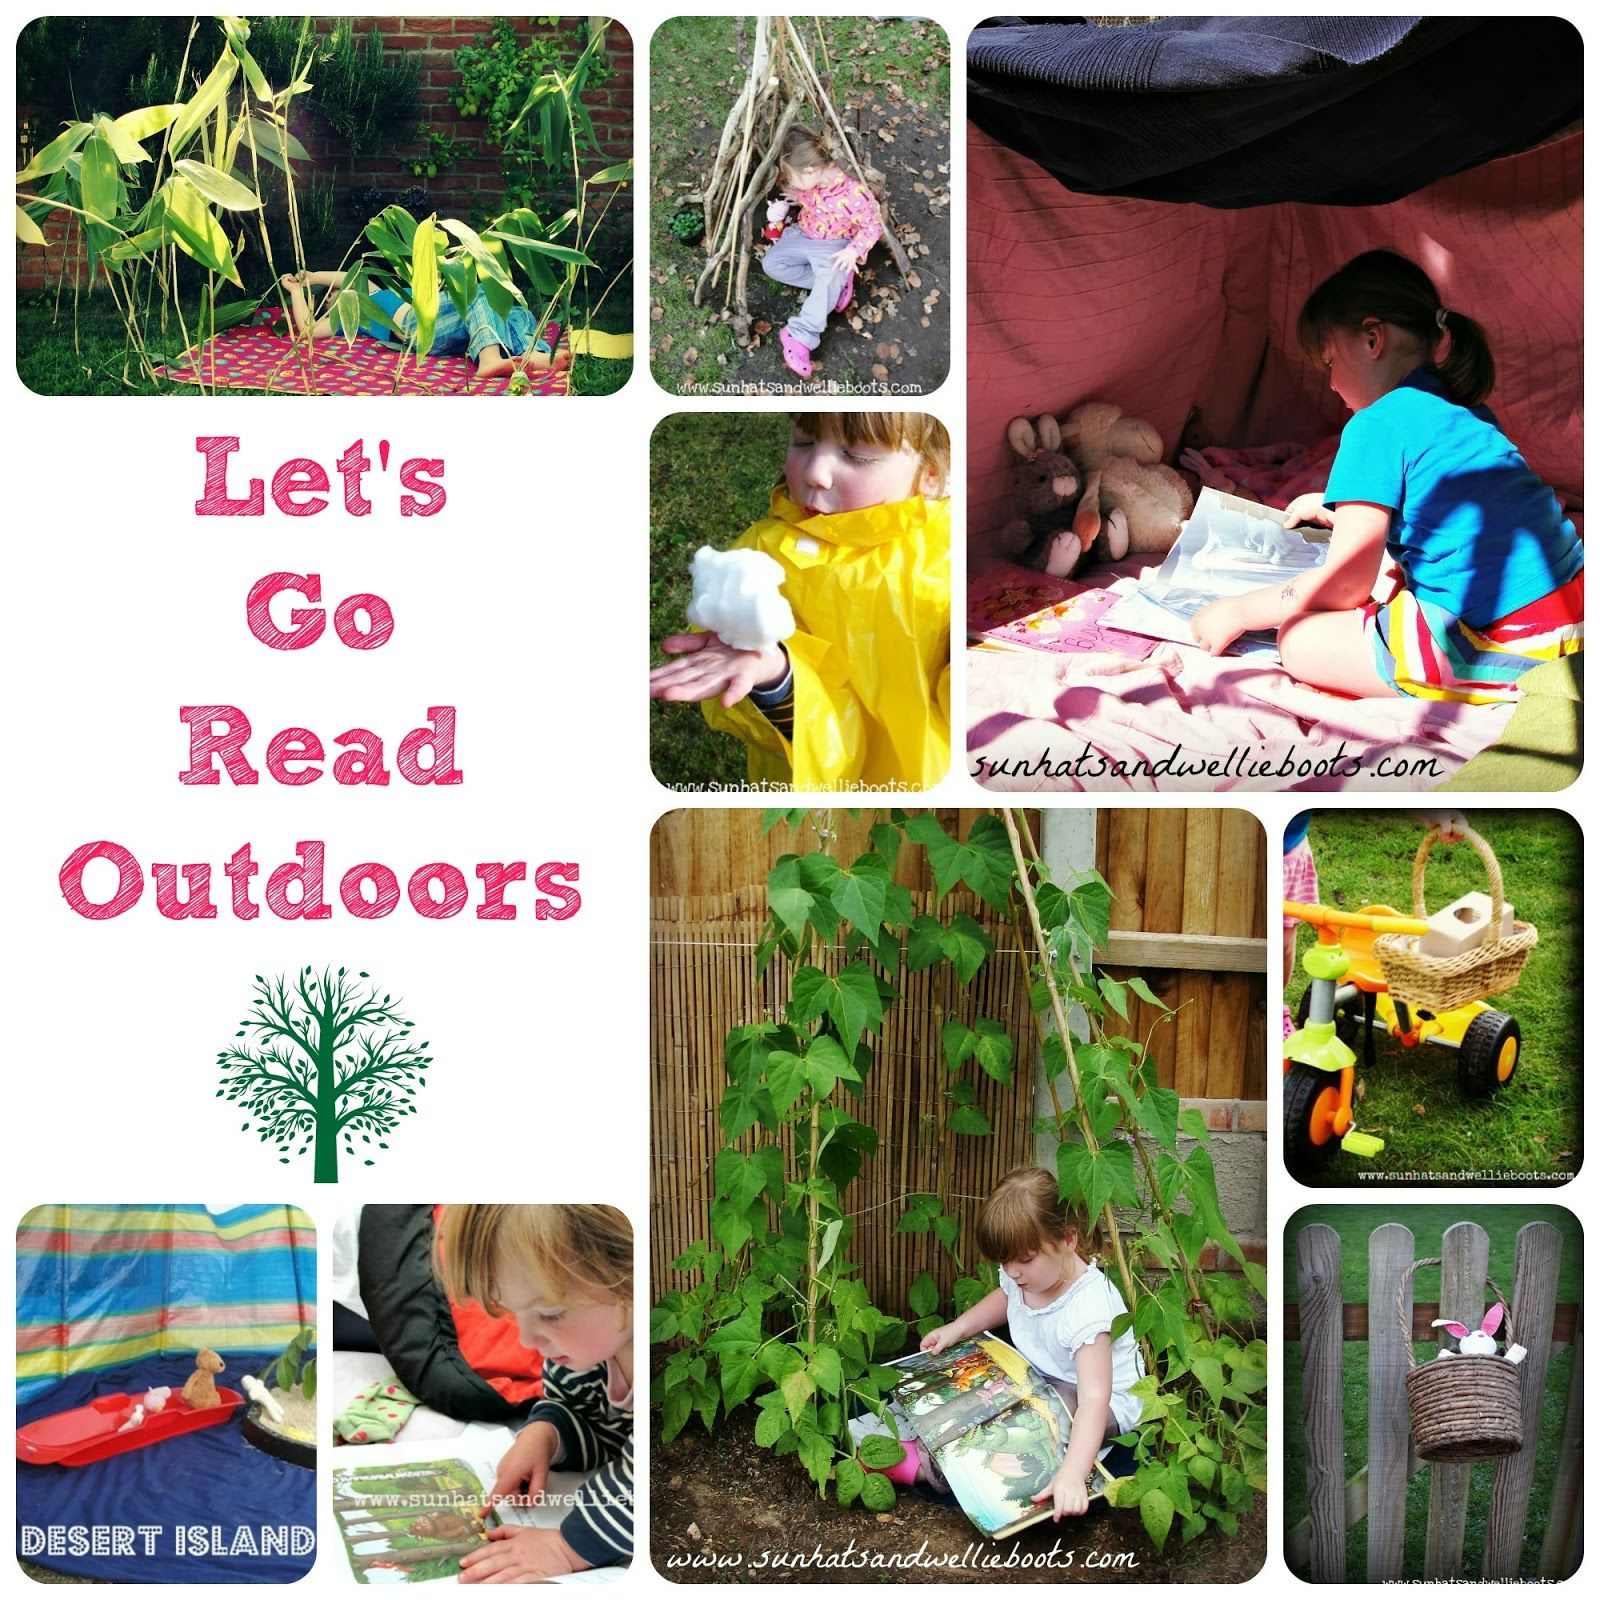 Let's Go Read Outdoors - 5 Reasons Why Literacy is more fun outside!